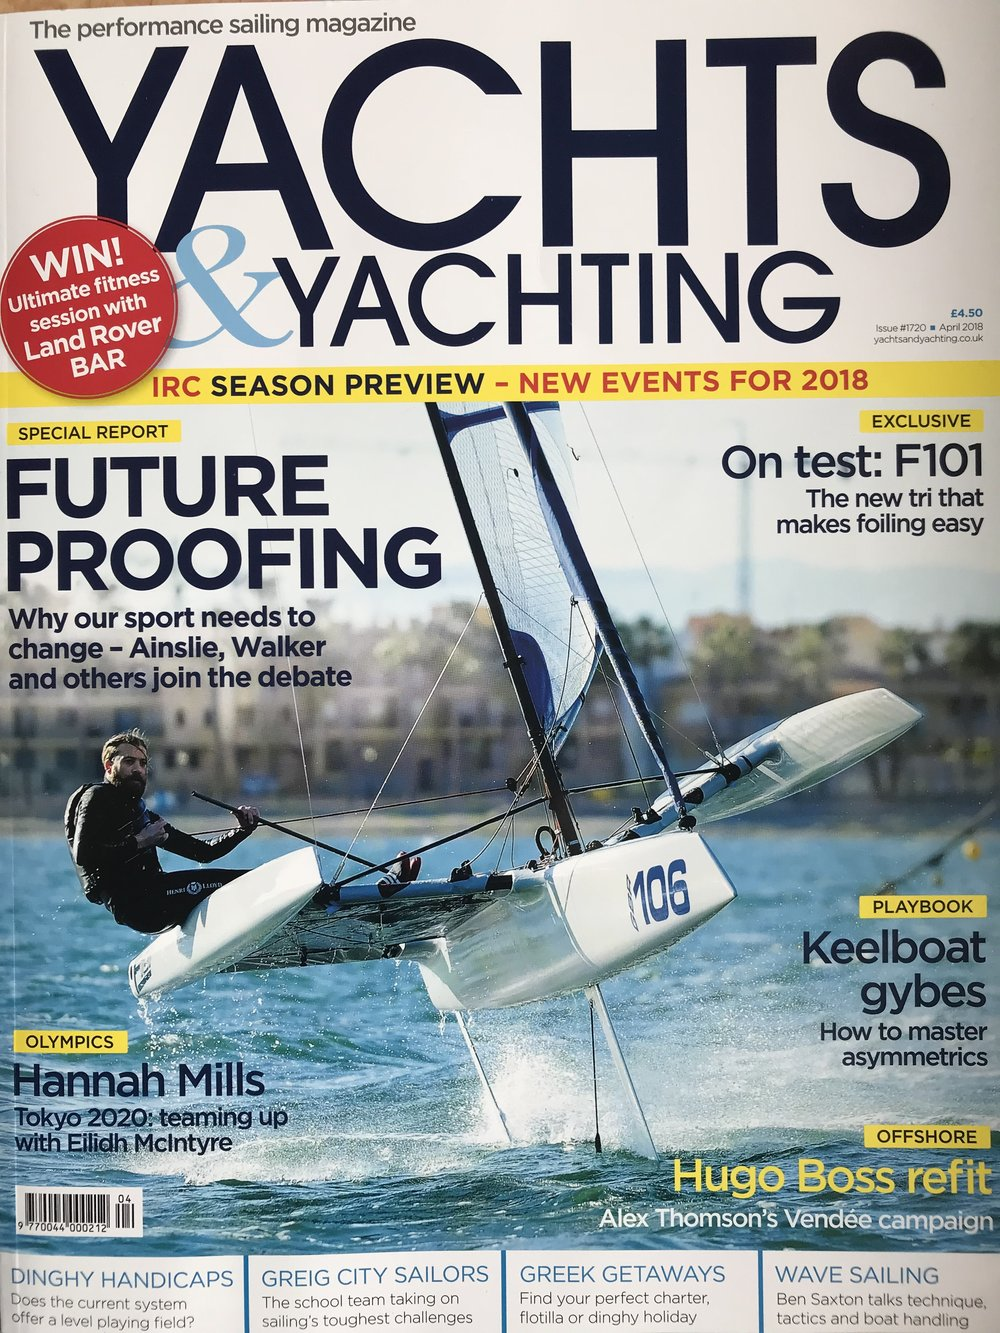 Yachts and Yachting front cover image.jpg